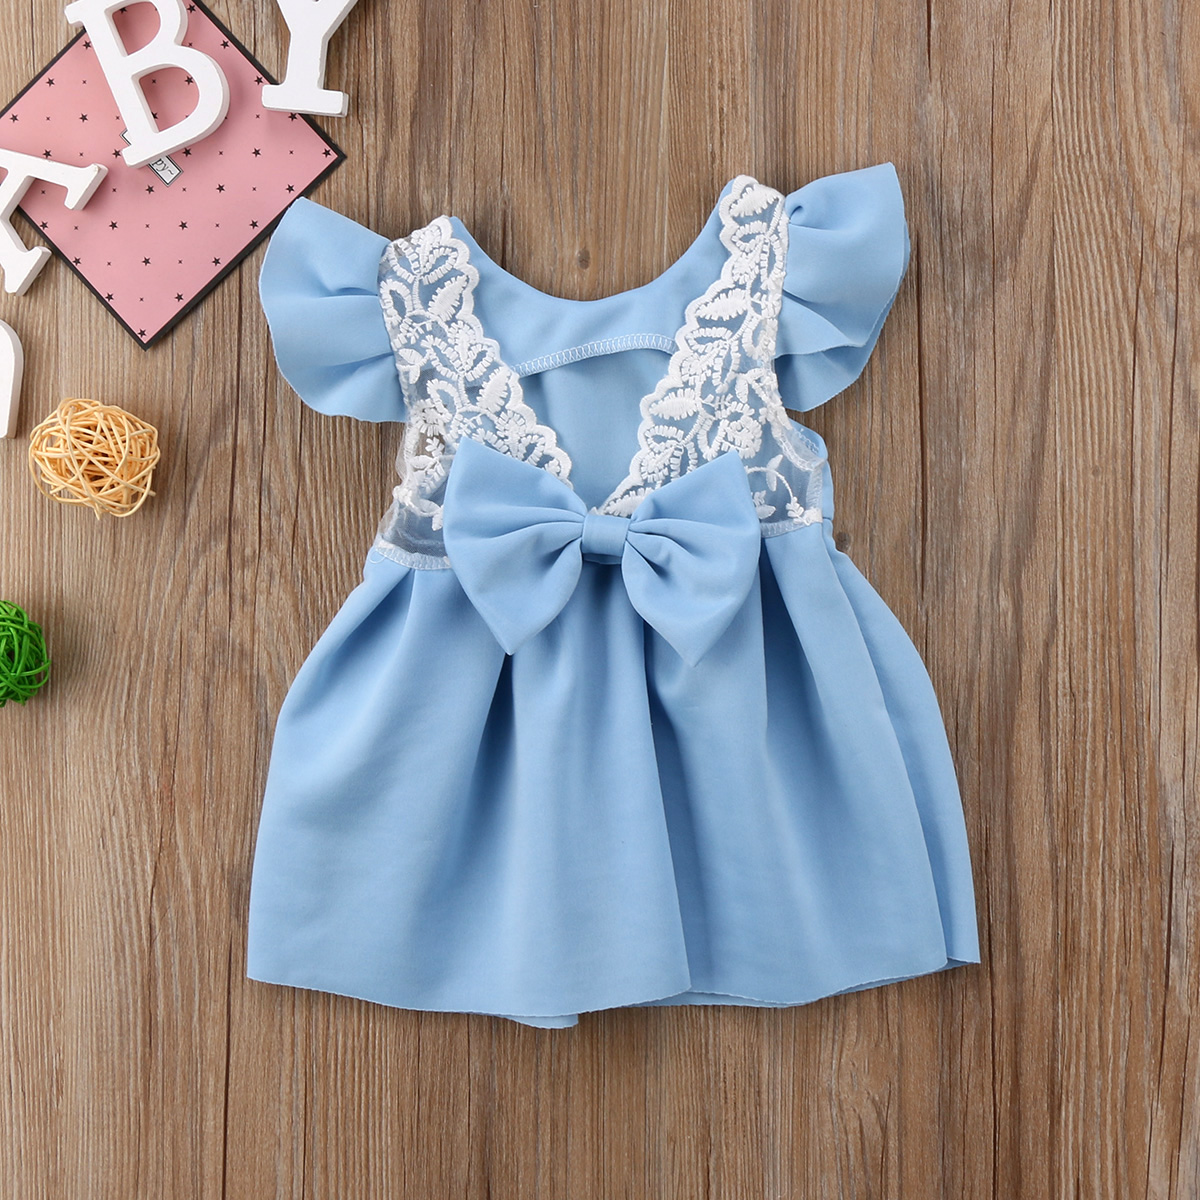 Pudcoco Baby Girls Dress Toddler Girls Backless Lace Bow Princess ...